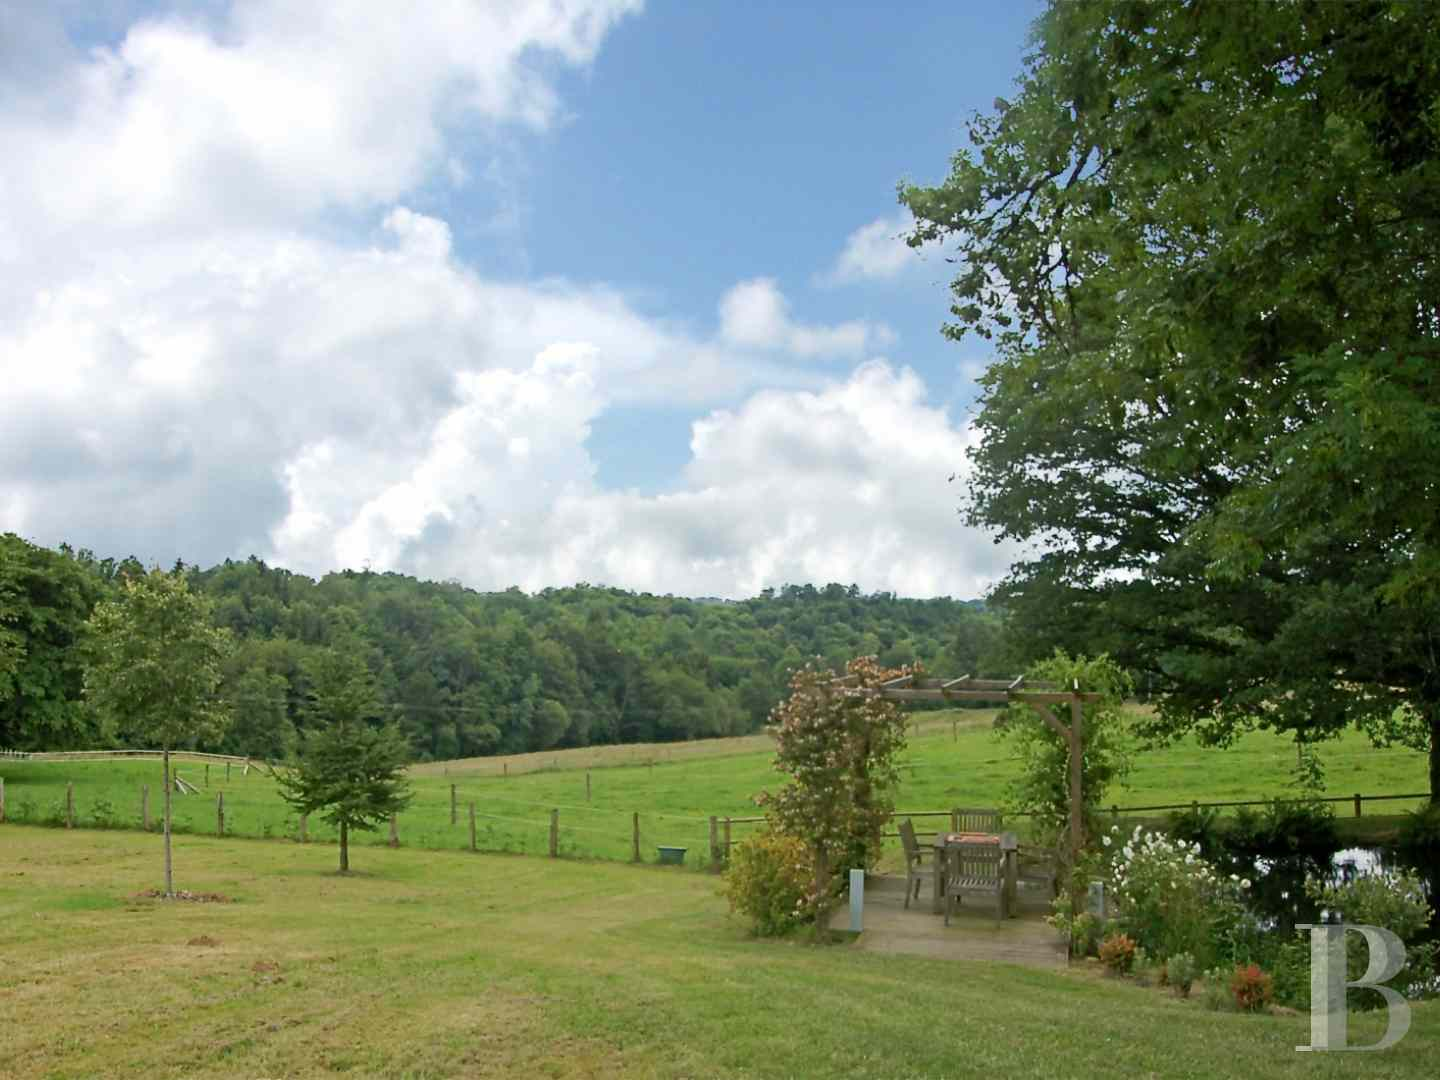 property for sale France limousin free lands - 17 zoom